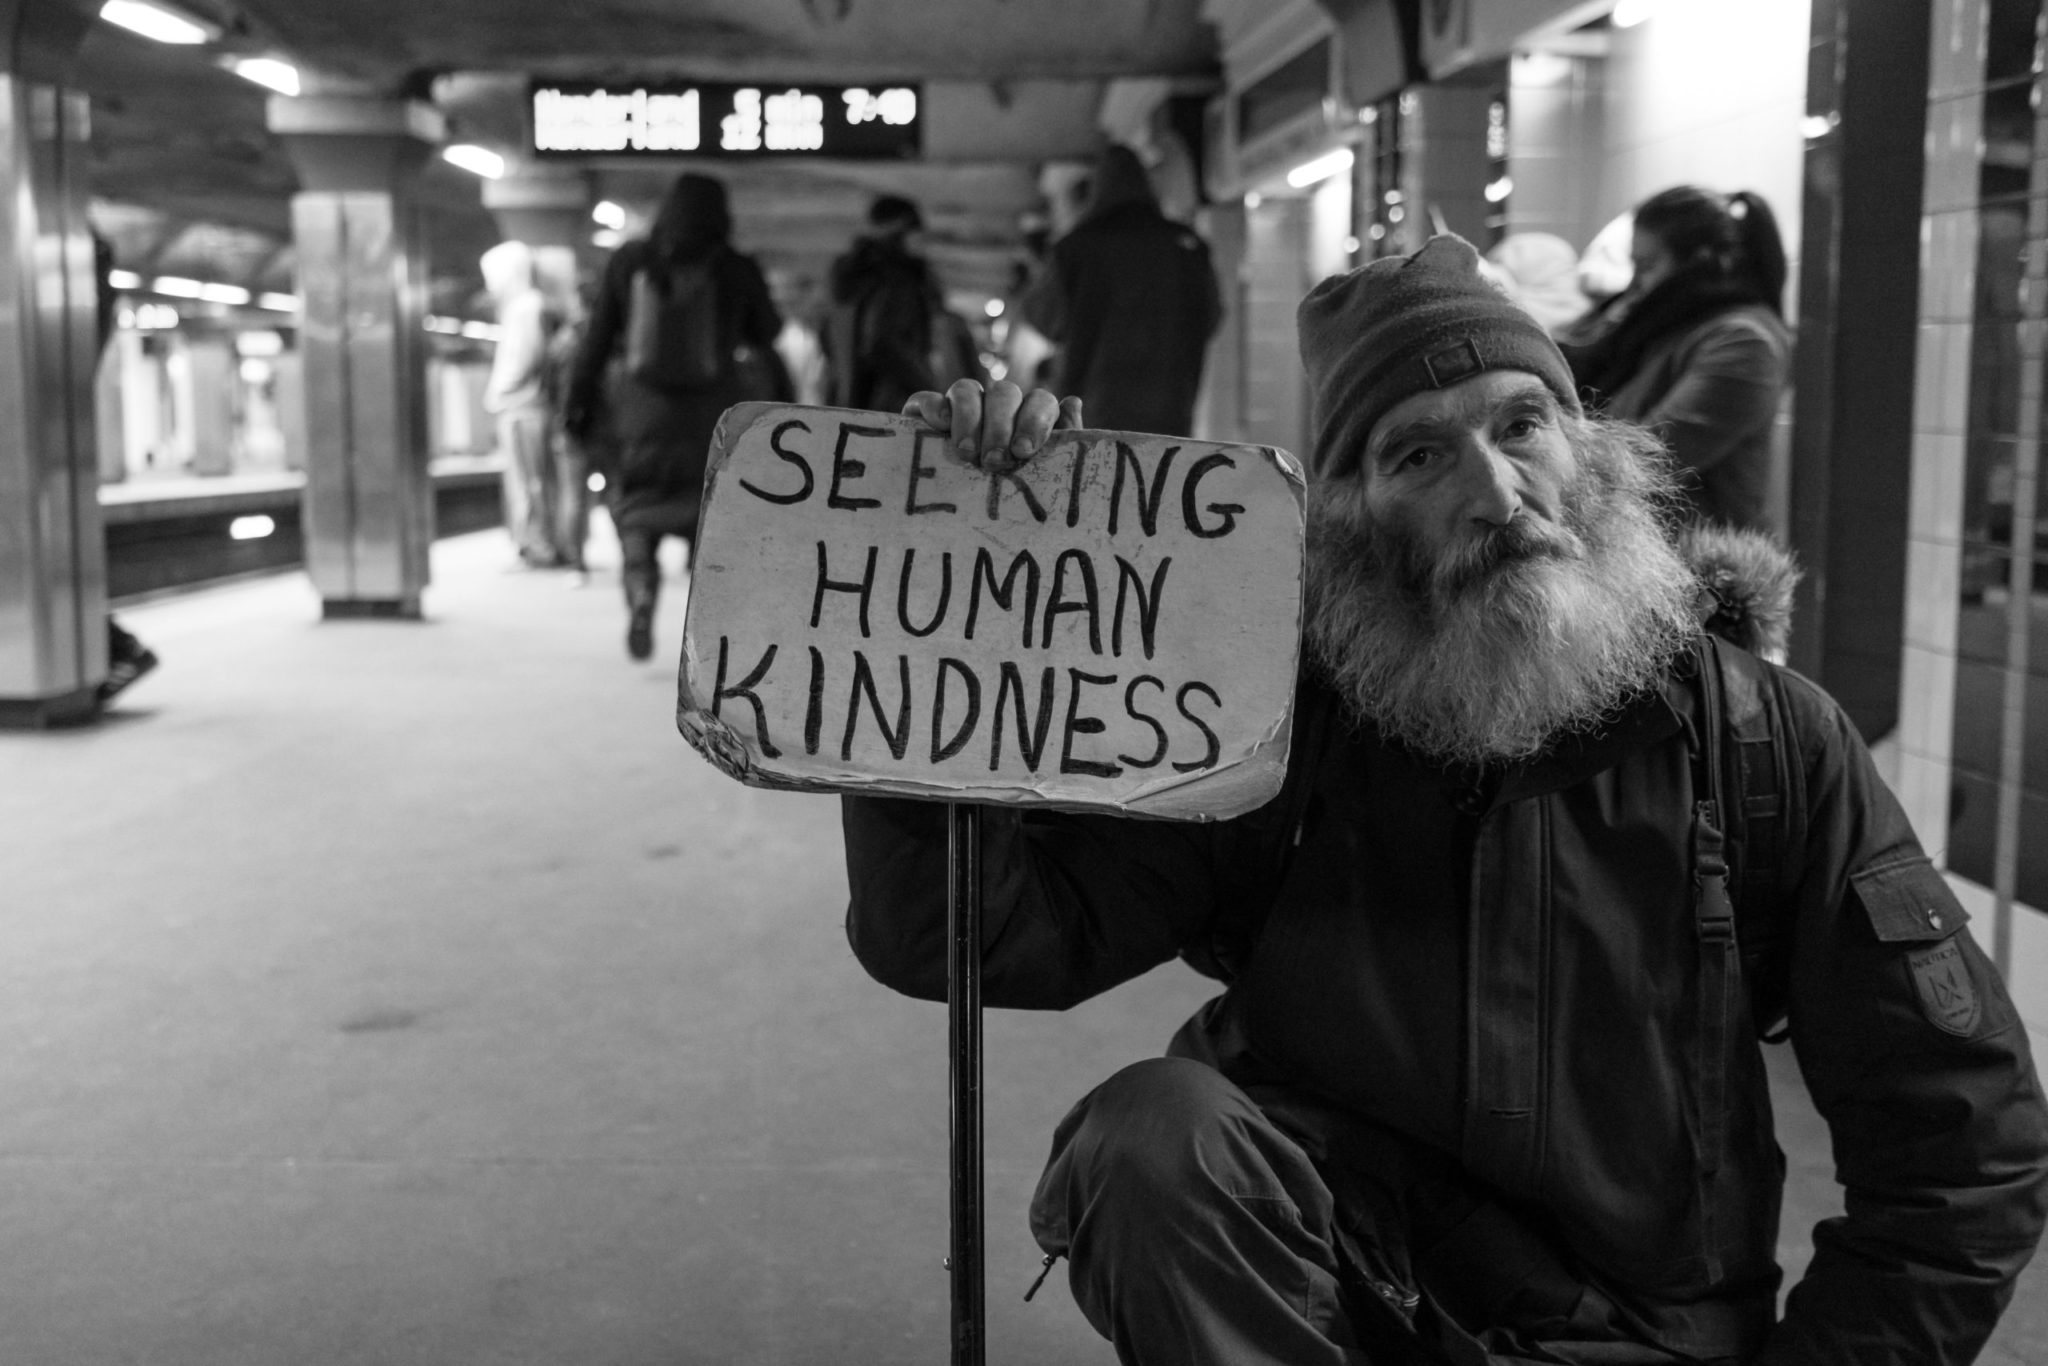 We cannot wish homelessness away